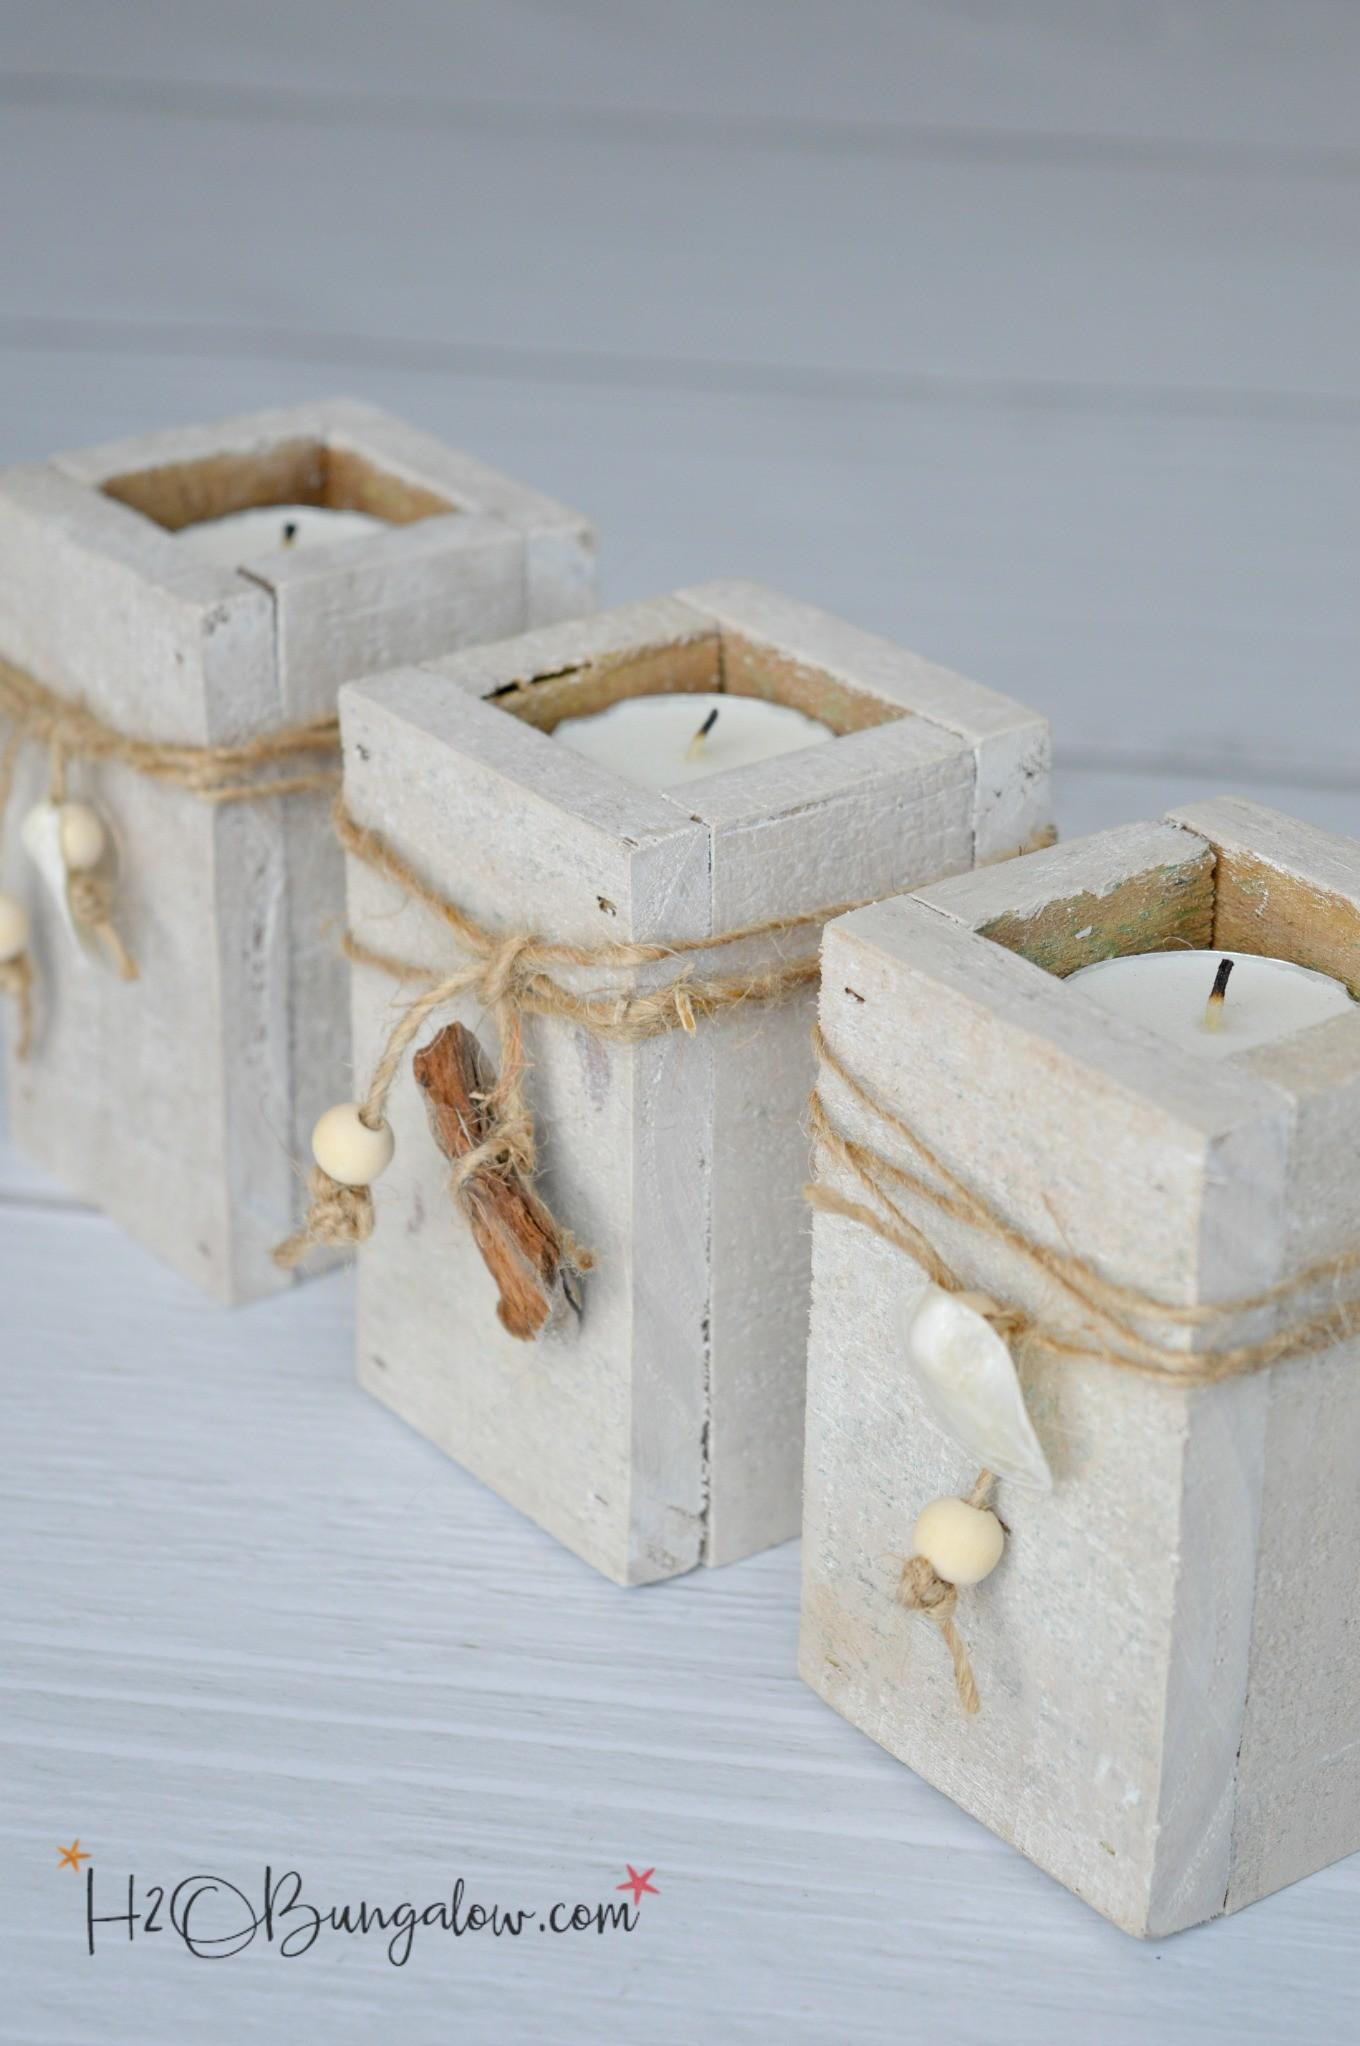 Diy Coastal Tealight Candle Holders H20bungalow